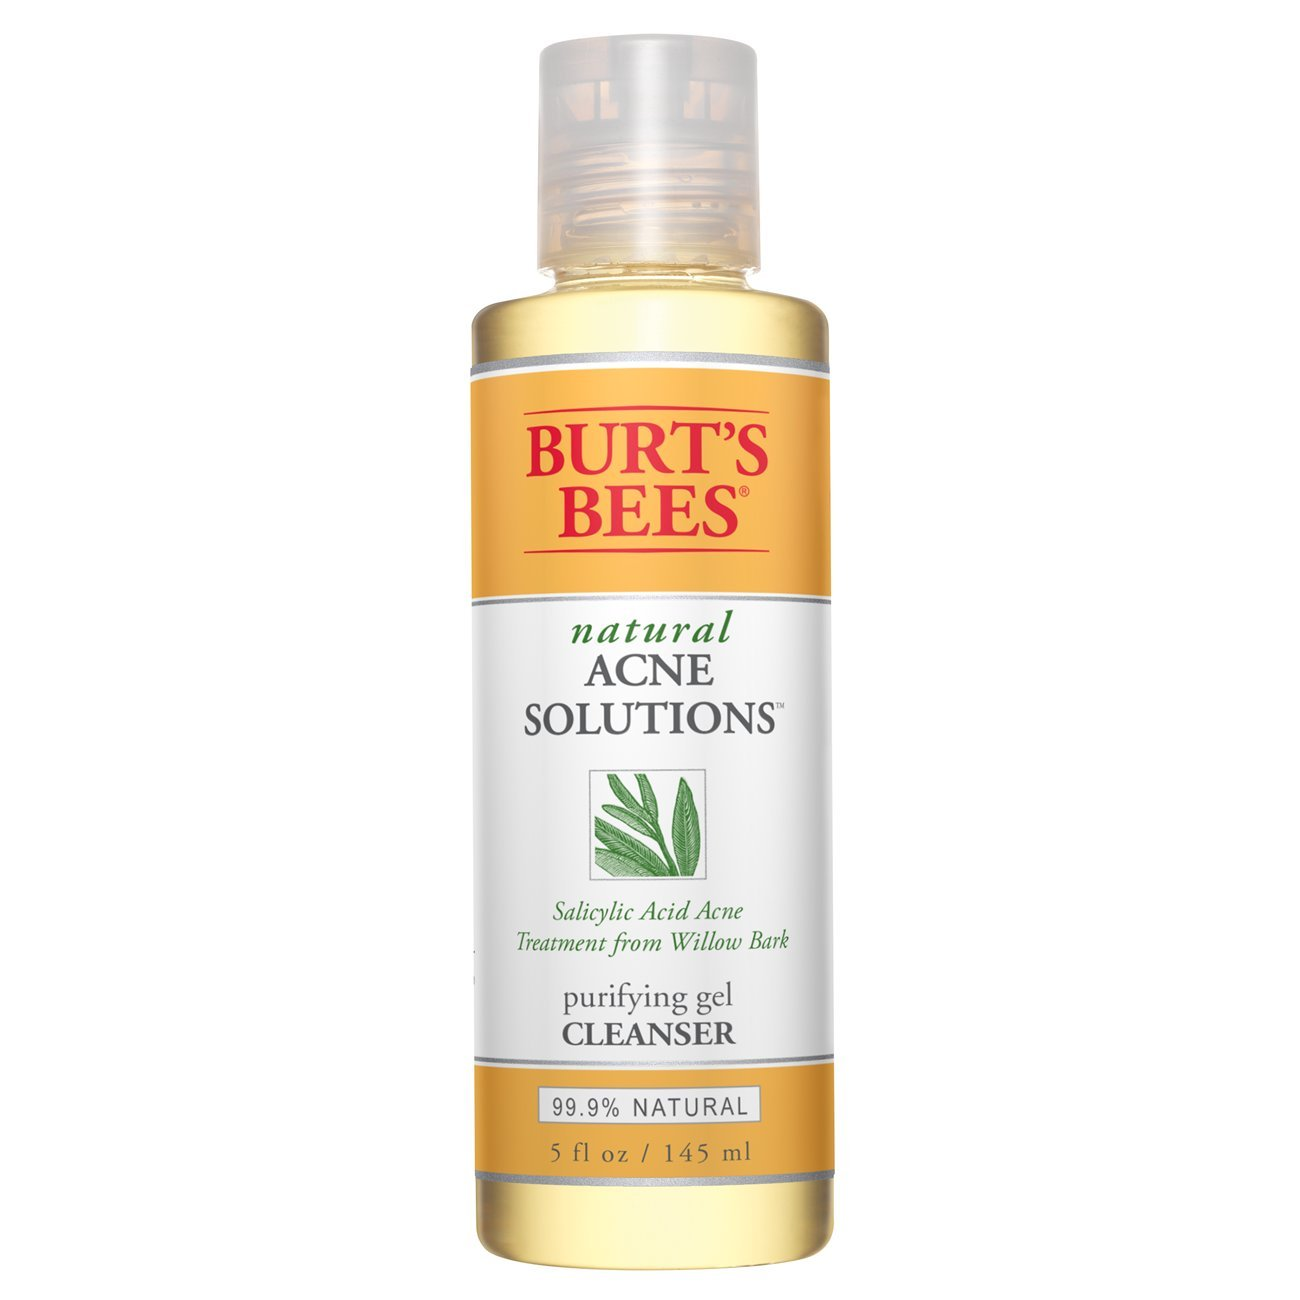 Burt's Bees Natural Acne Solutions Purifying Gel Cleanser, 5 Ounces, Pack of 3